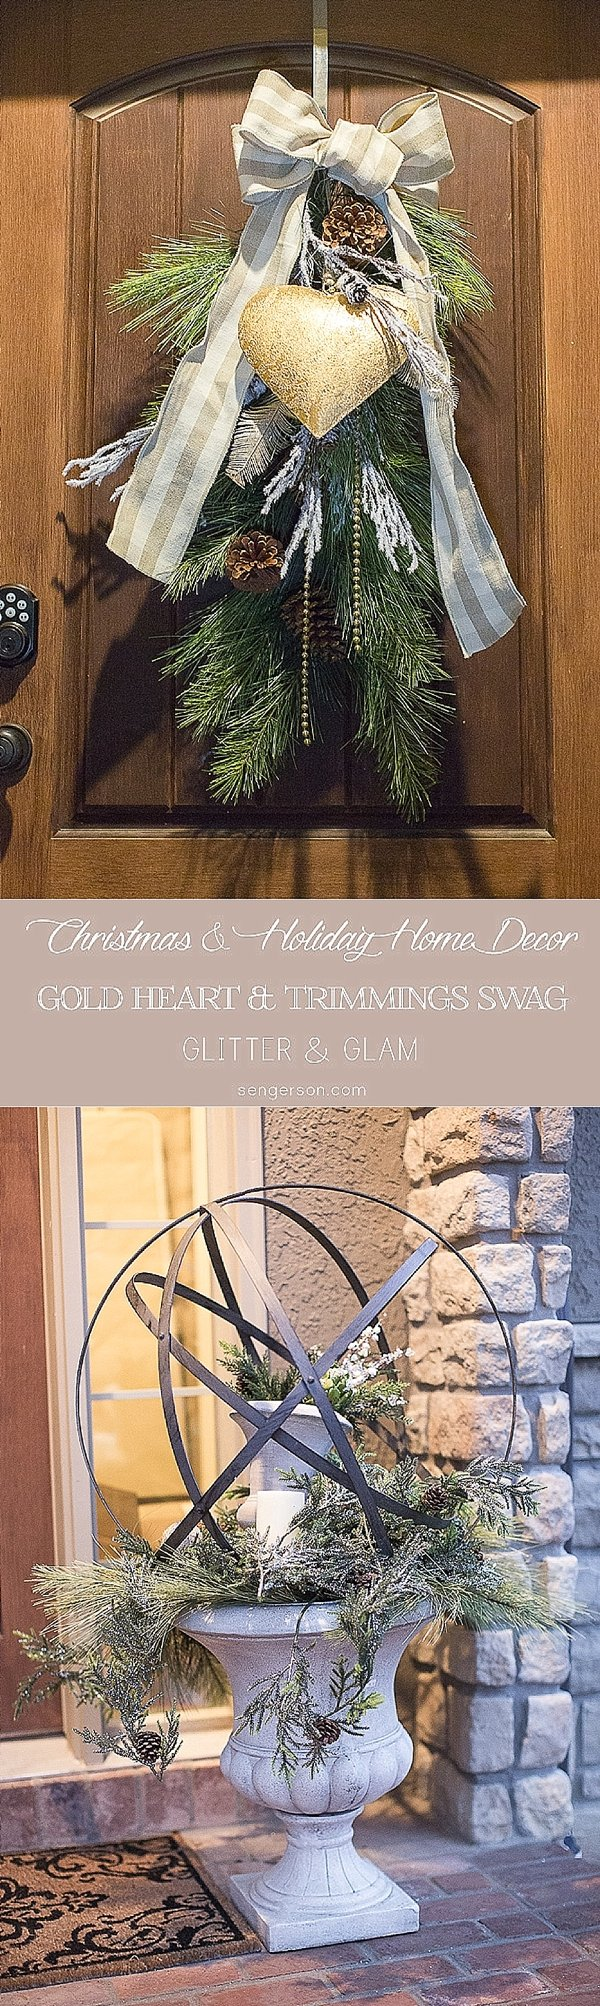 rustic glam luxe farmhouse style_0008